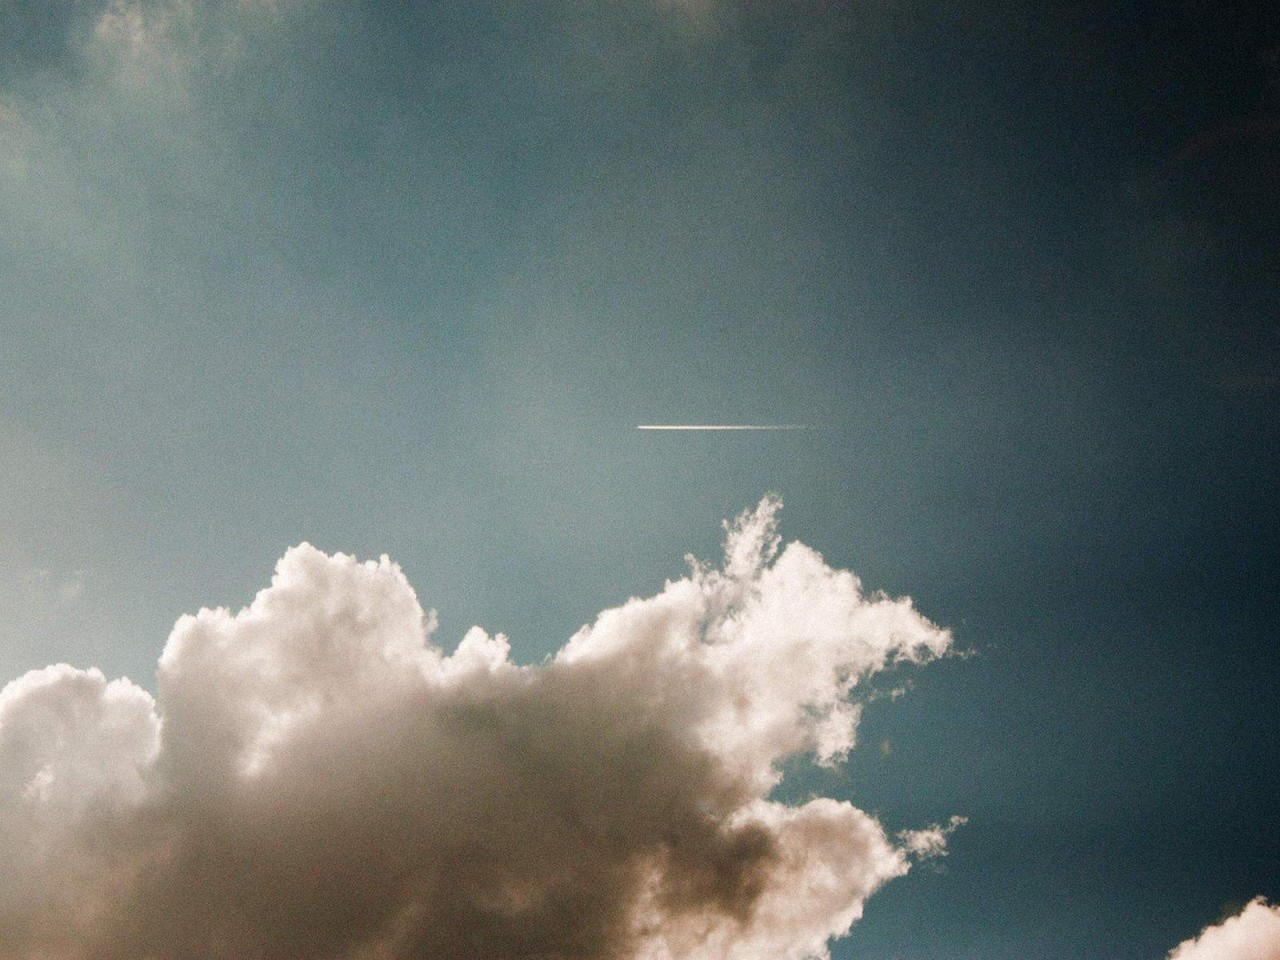 Plane in the sky. Photo: Pexels